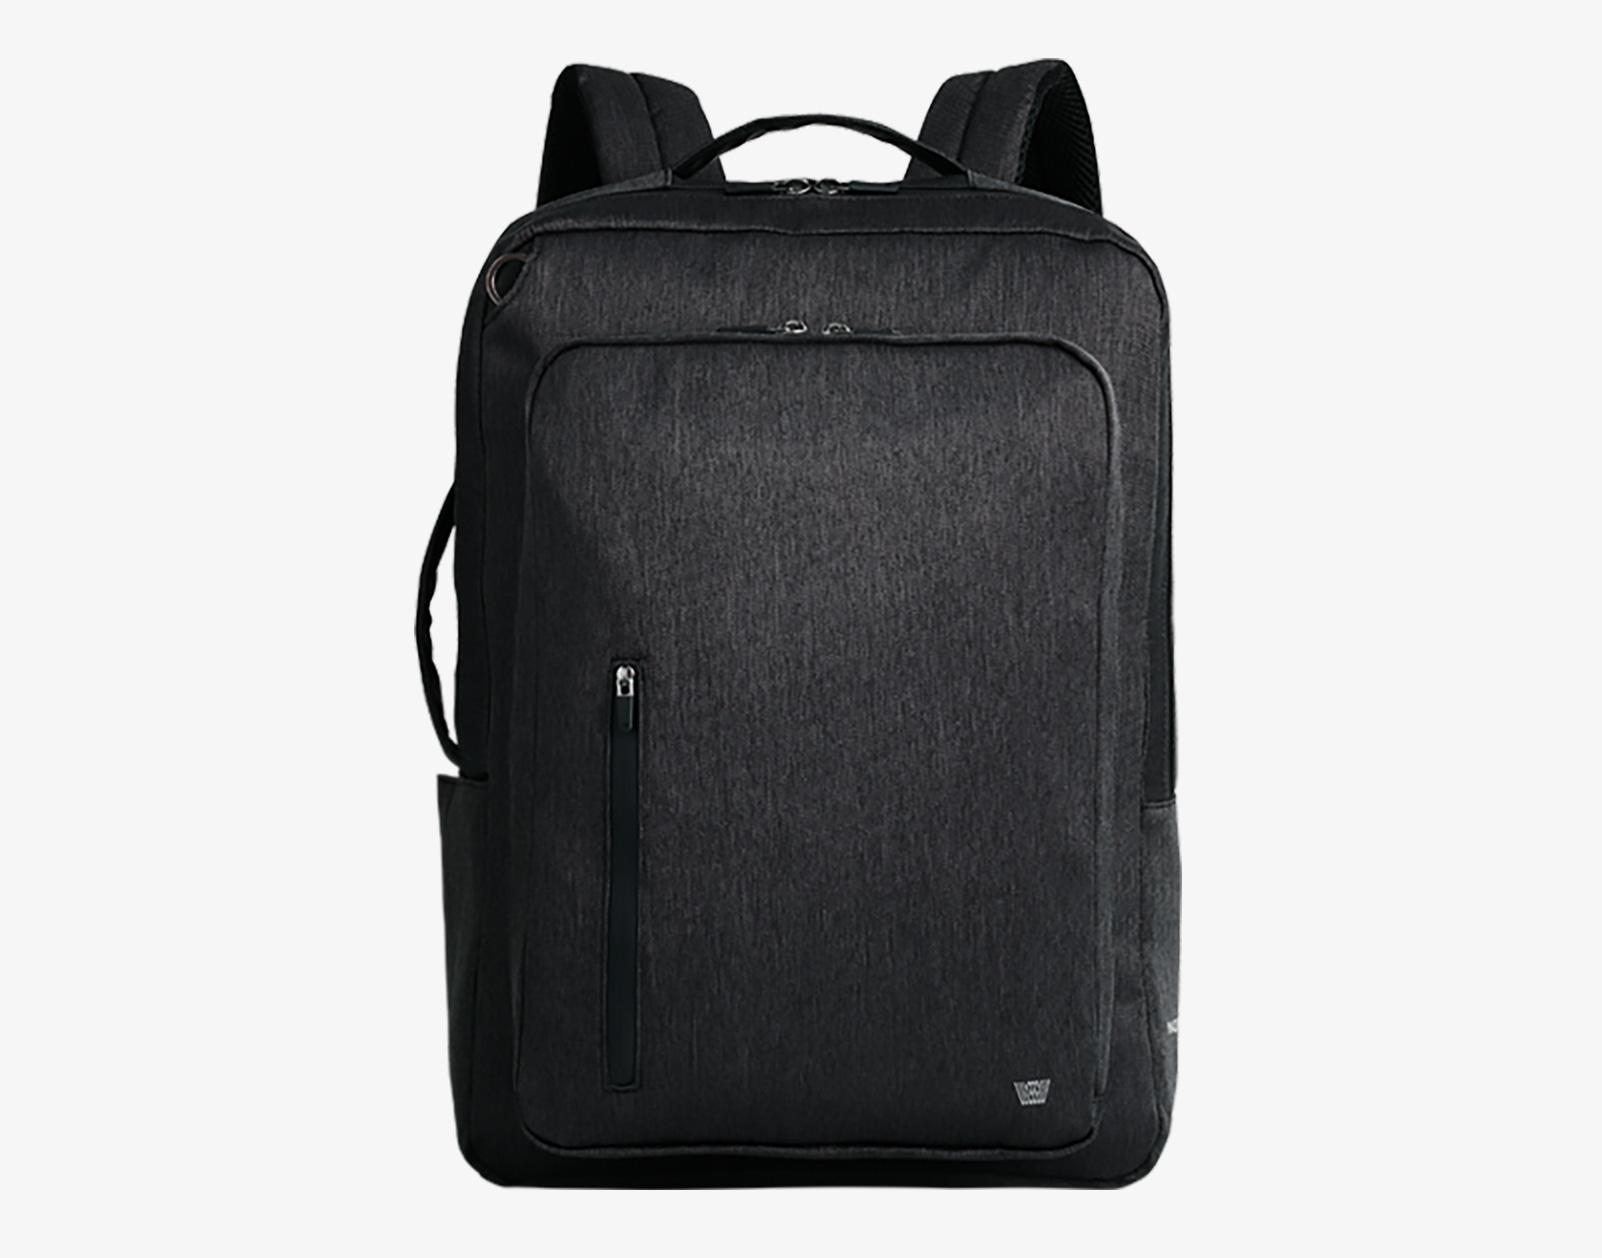 ion travel bag